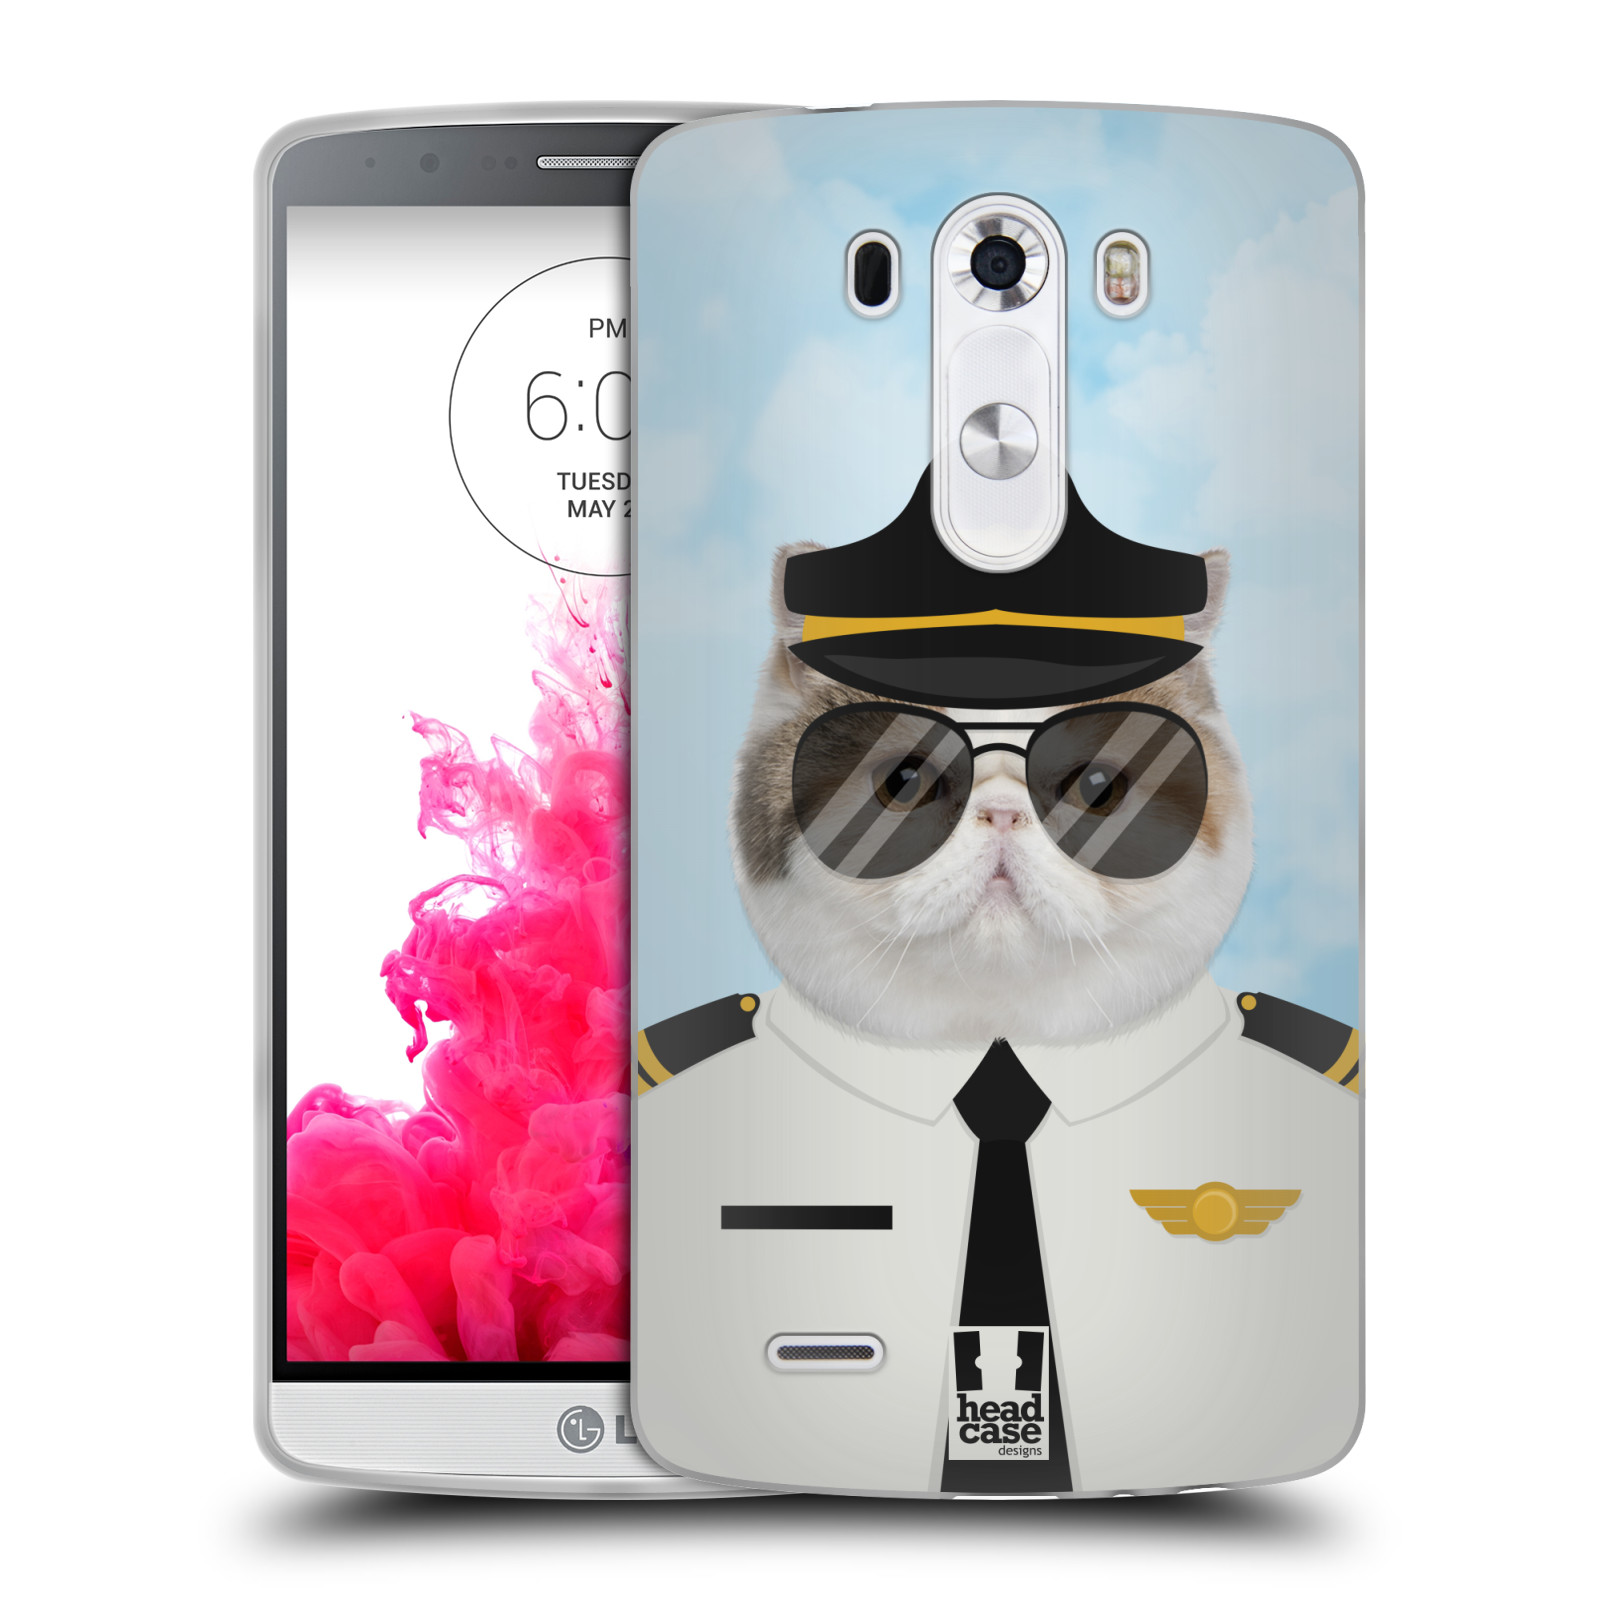 HEAD-CASE-DESIGNS-ANIMALS-AND-PROFESSION-SOFT-GEL-CASE-FOR-LG-PHONES-1